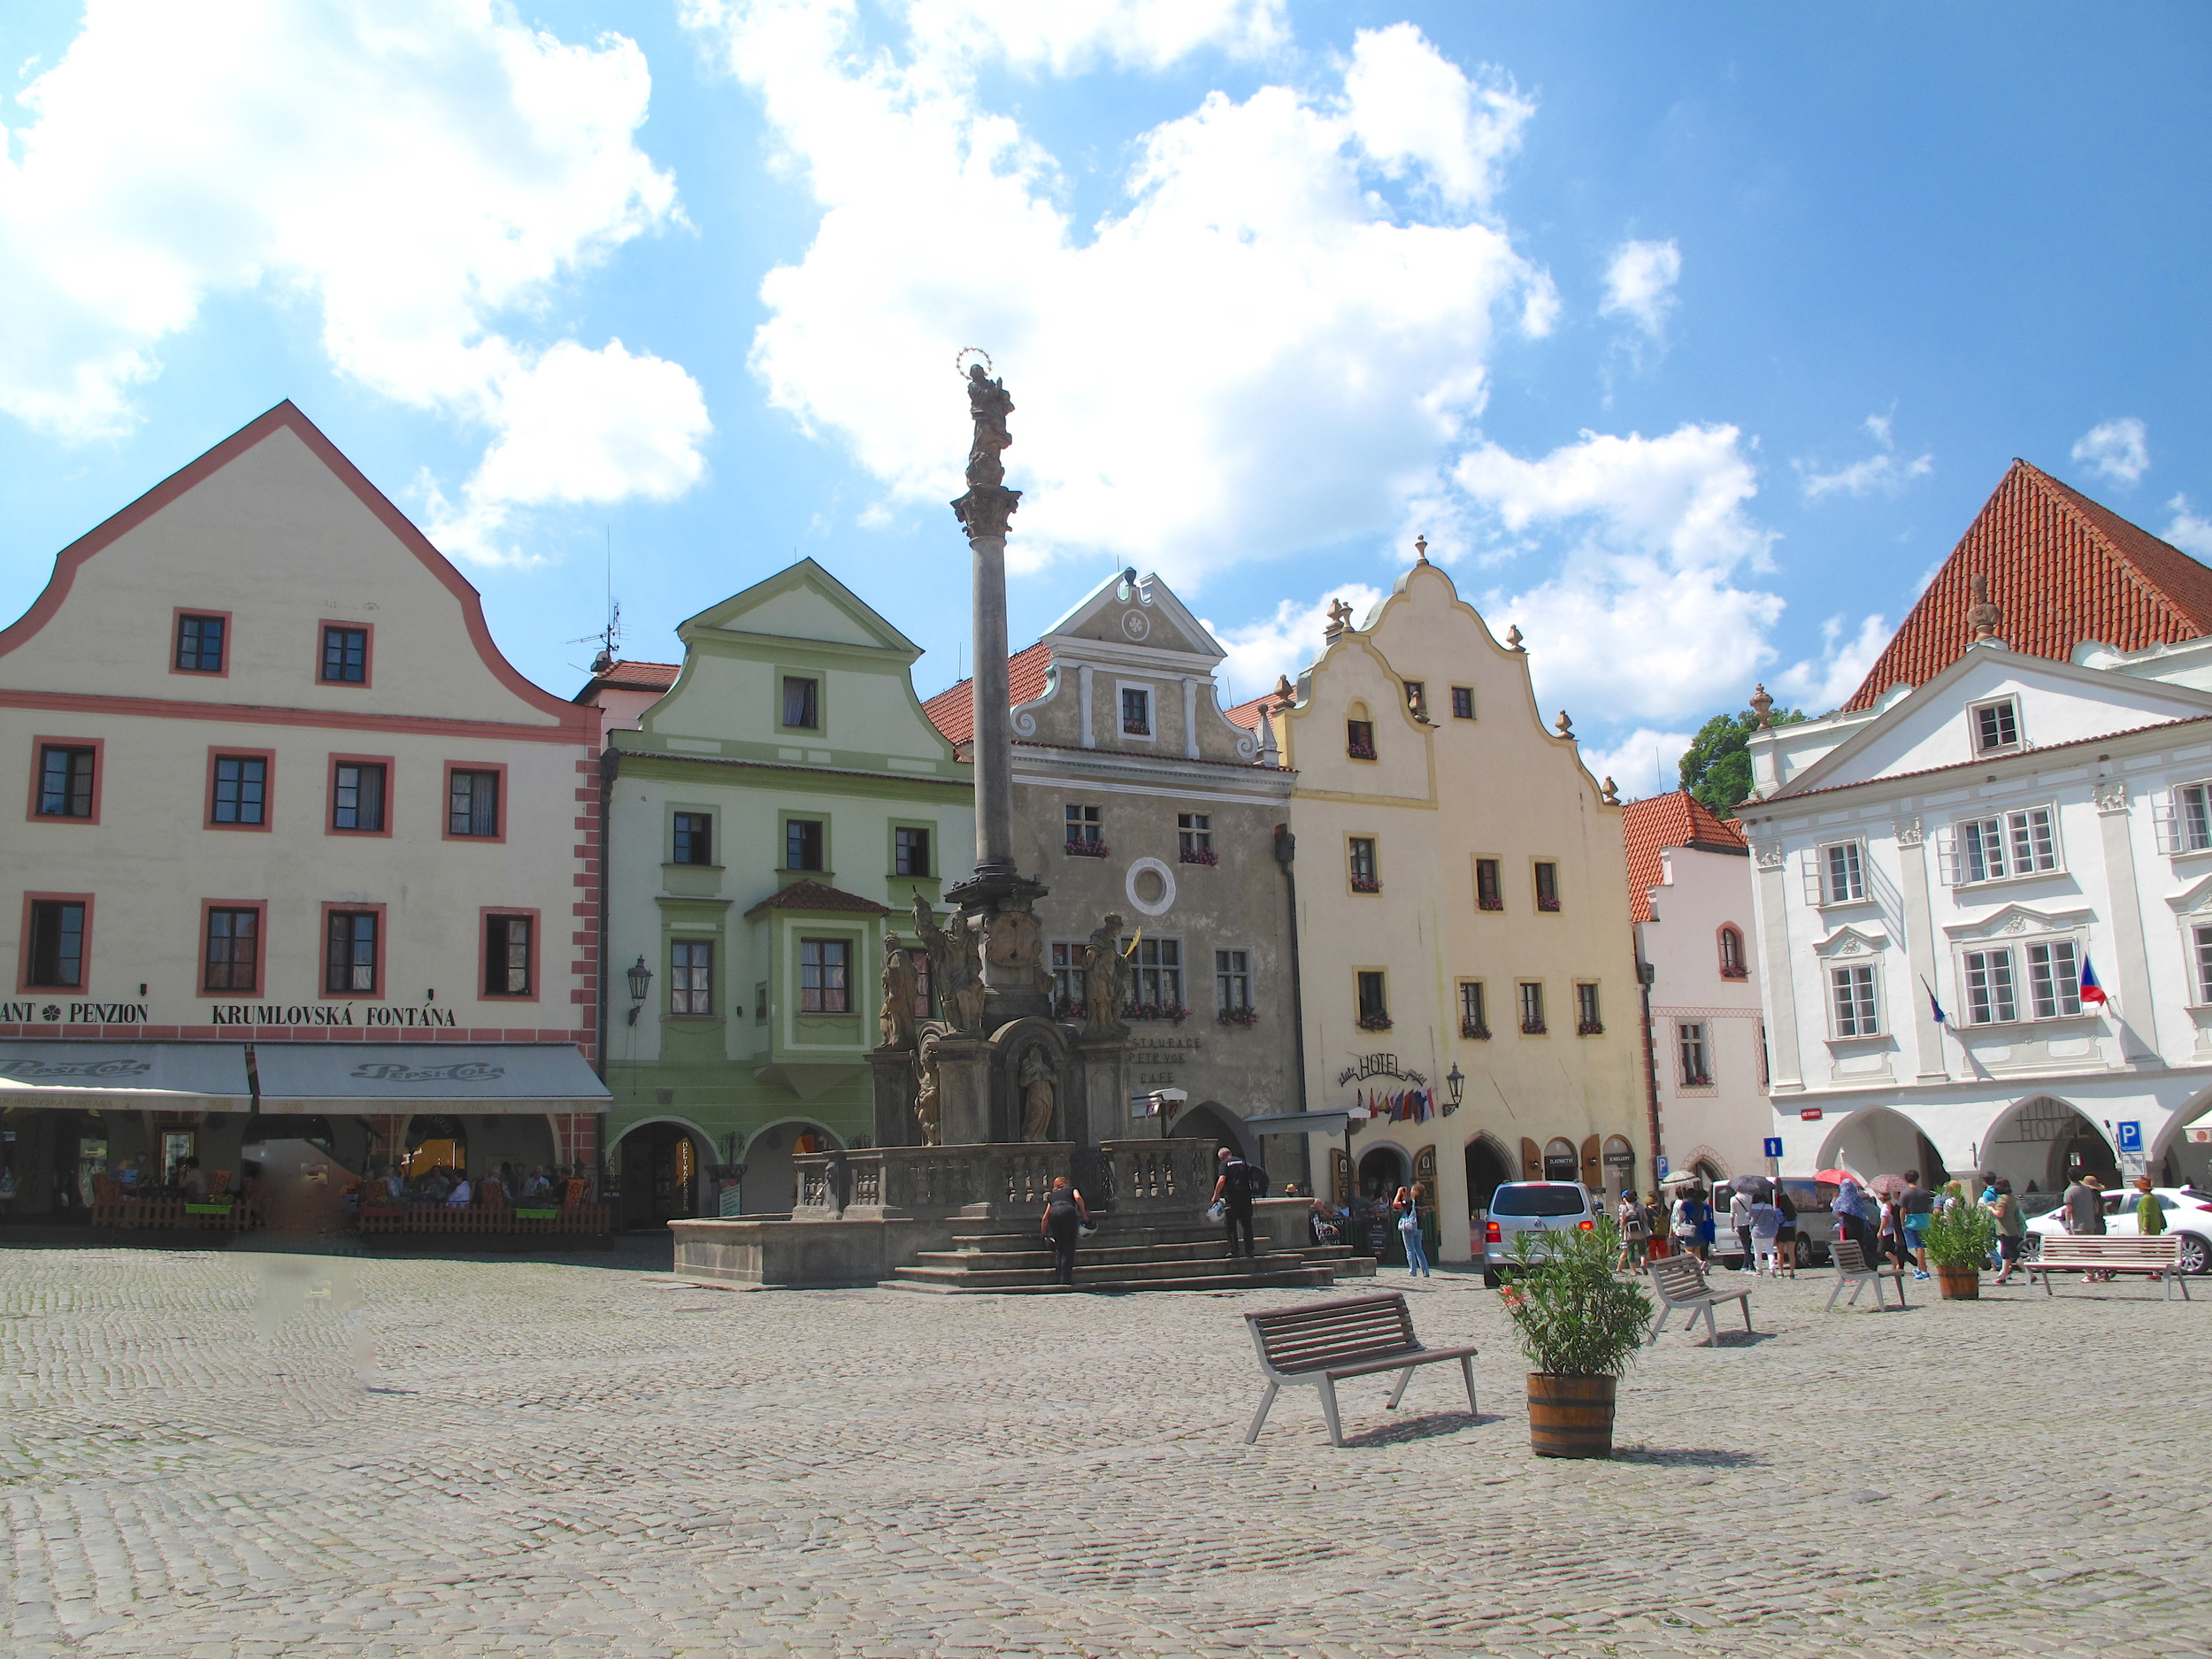 Svornosti Town Square, with colourful old buildings, in Cesky Krumlov, Czech Republic.